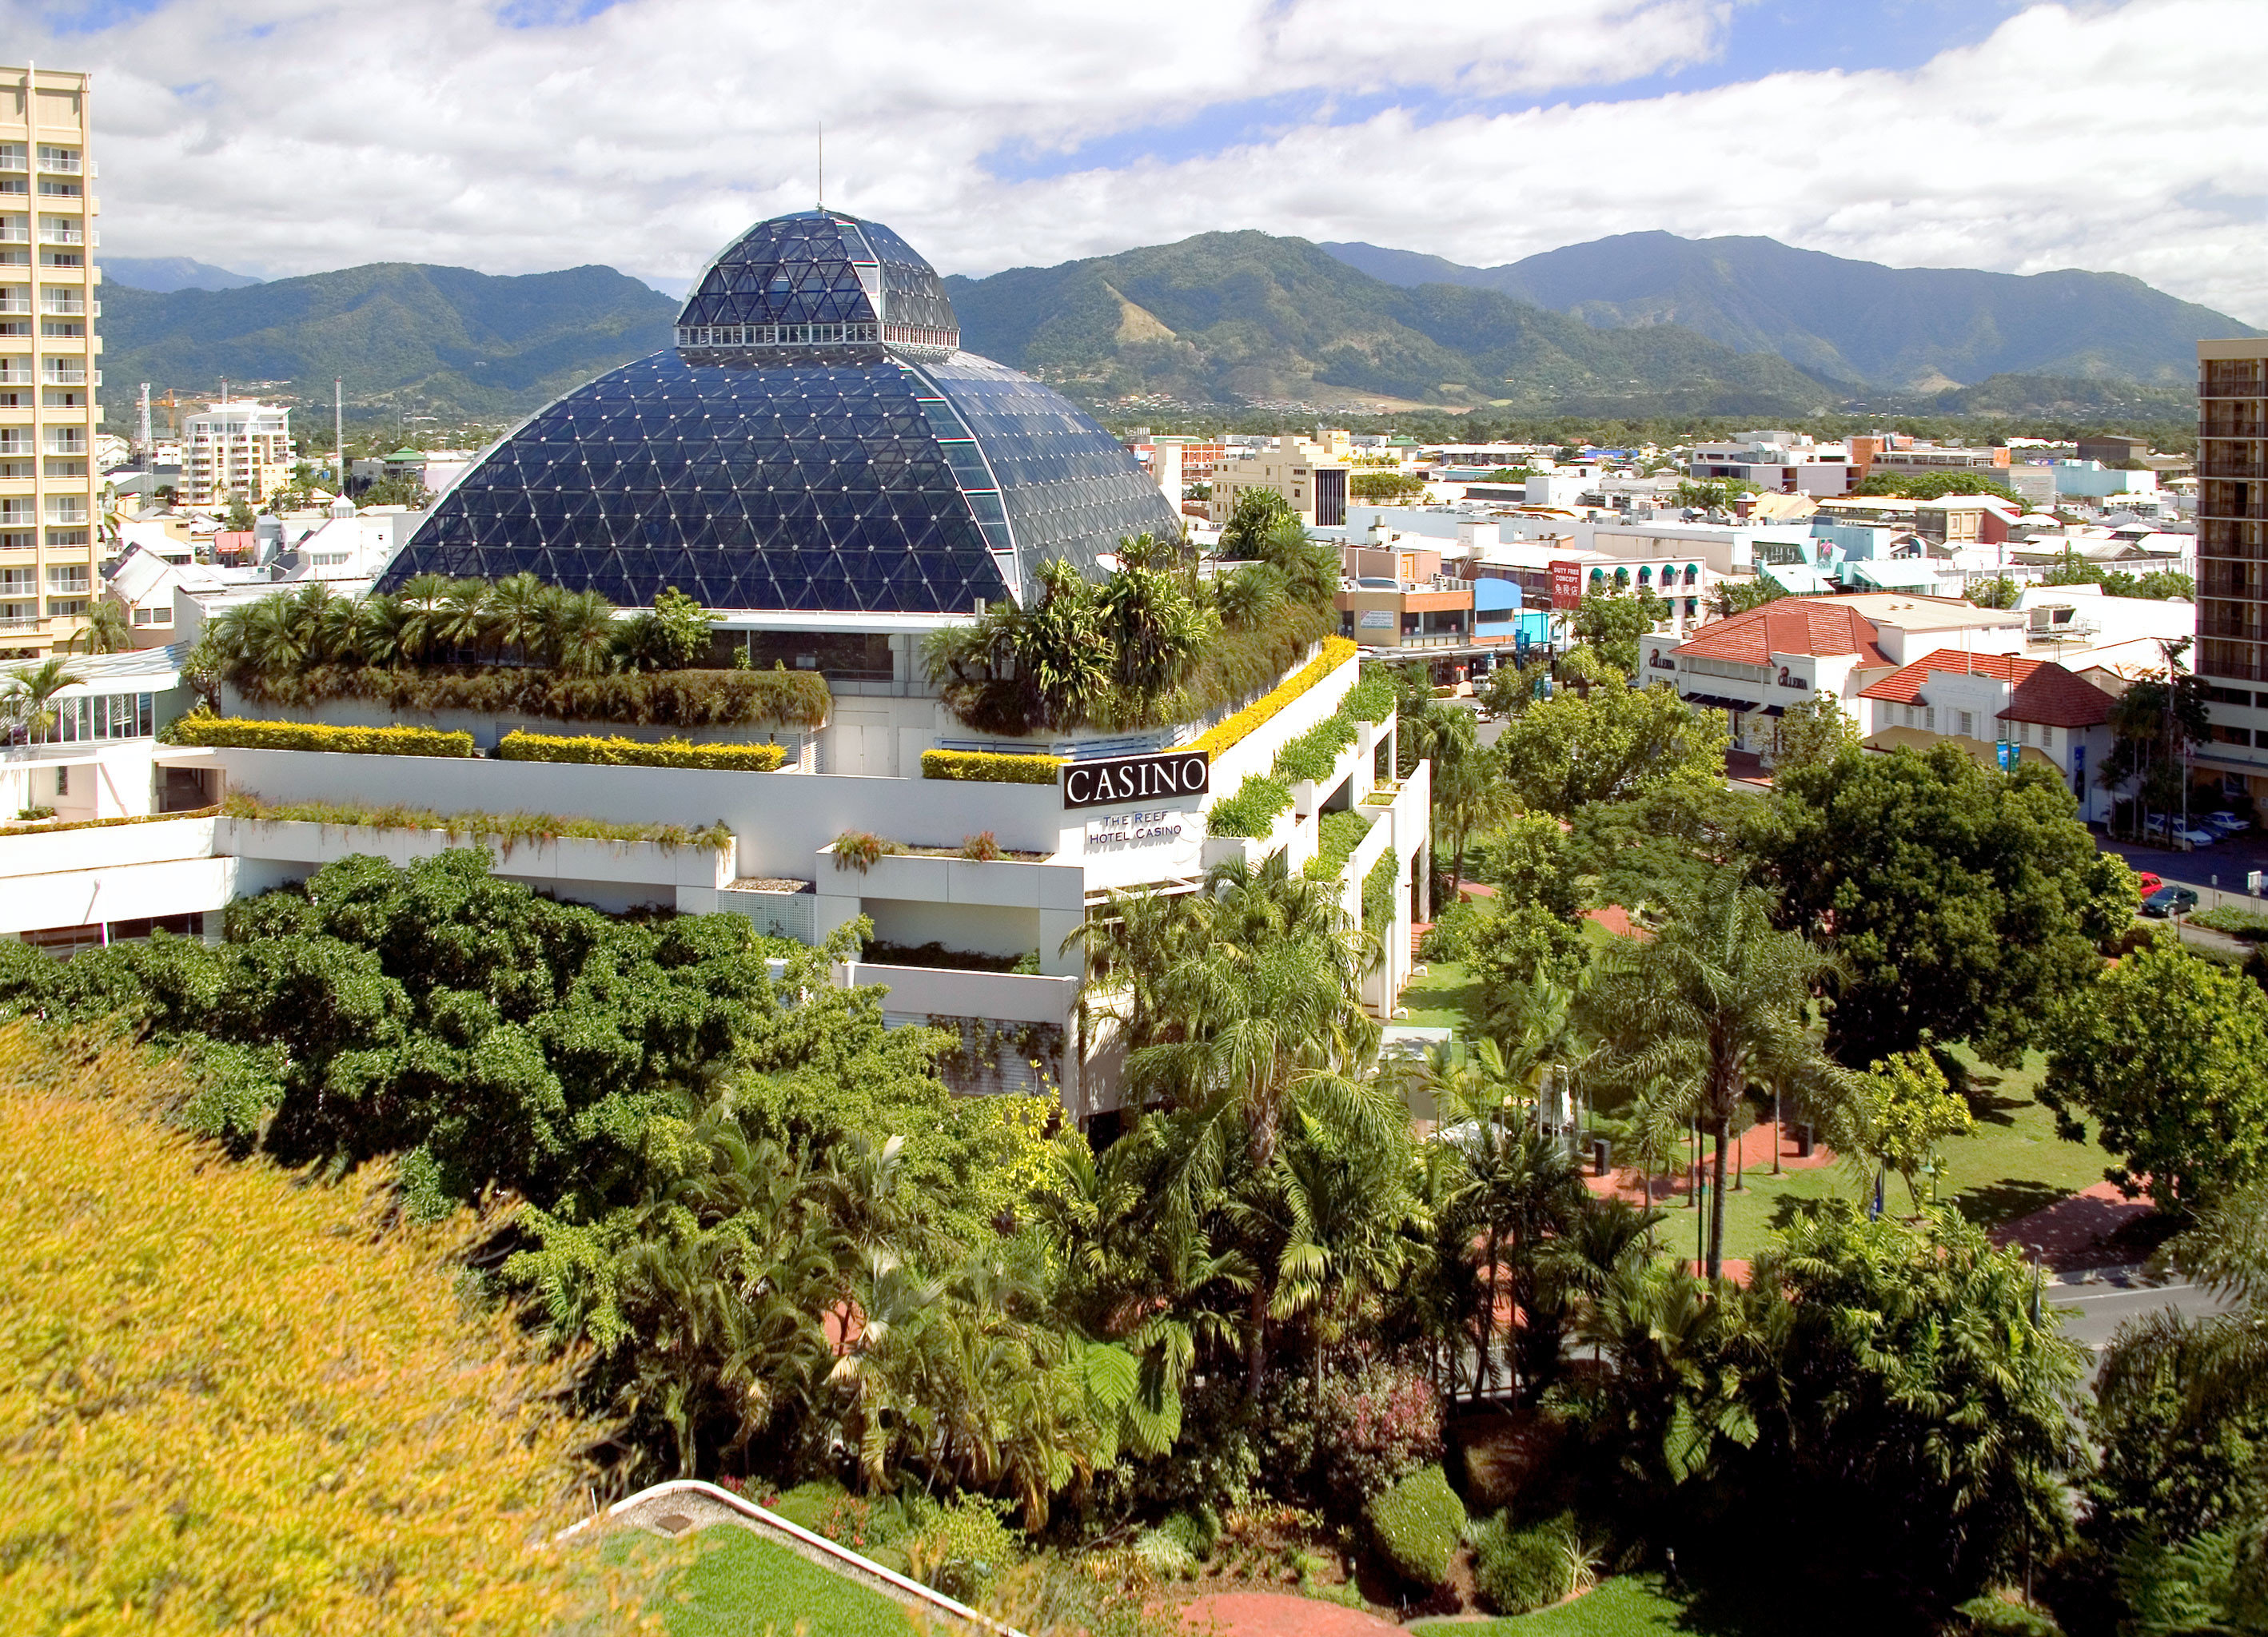 Architecture Buildings Casino Exterior Resort tree sky grass building mountain Town Village dome Garden day